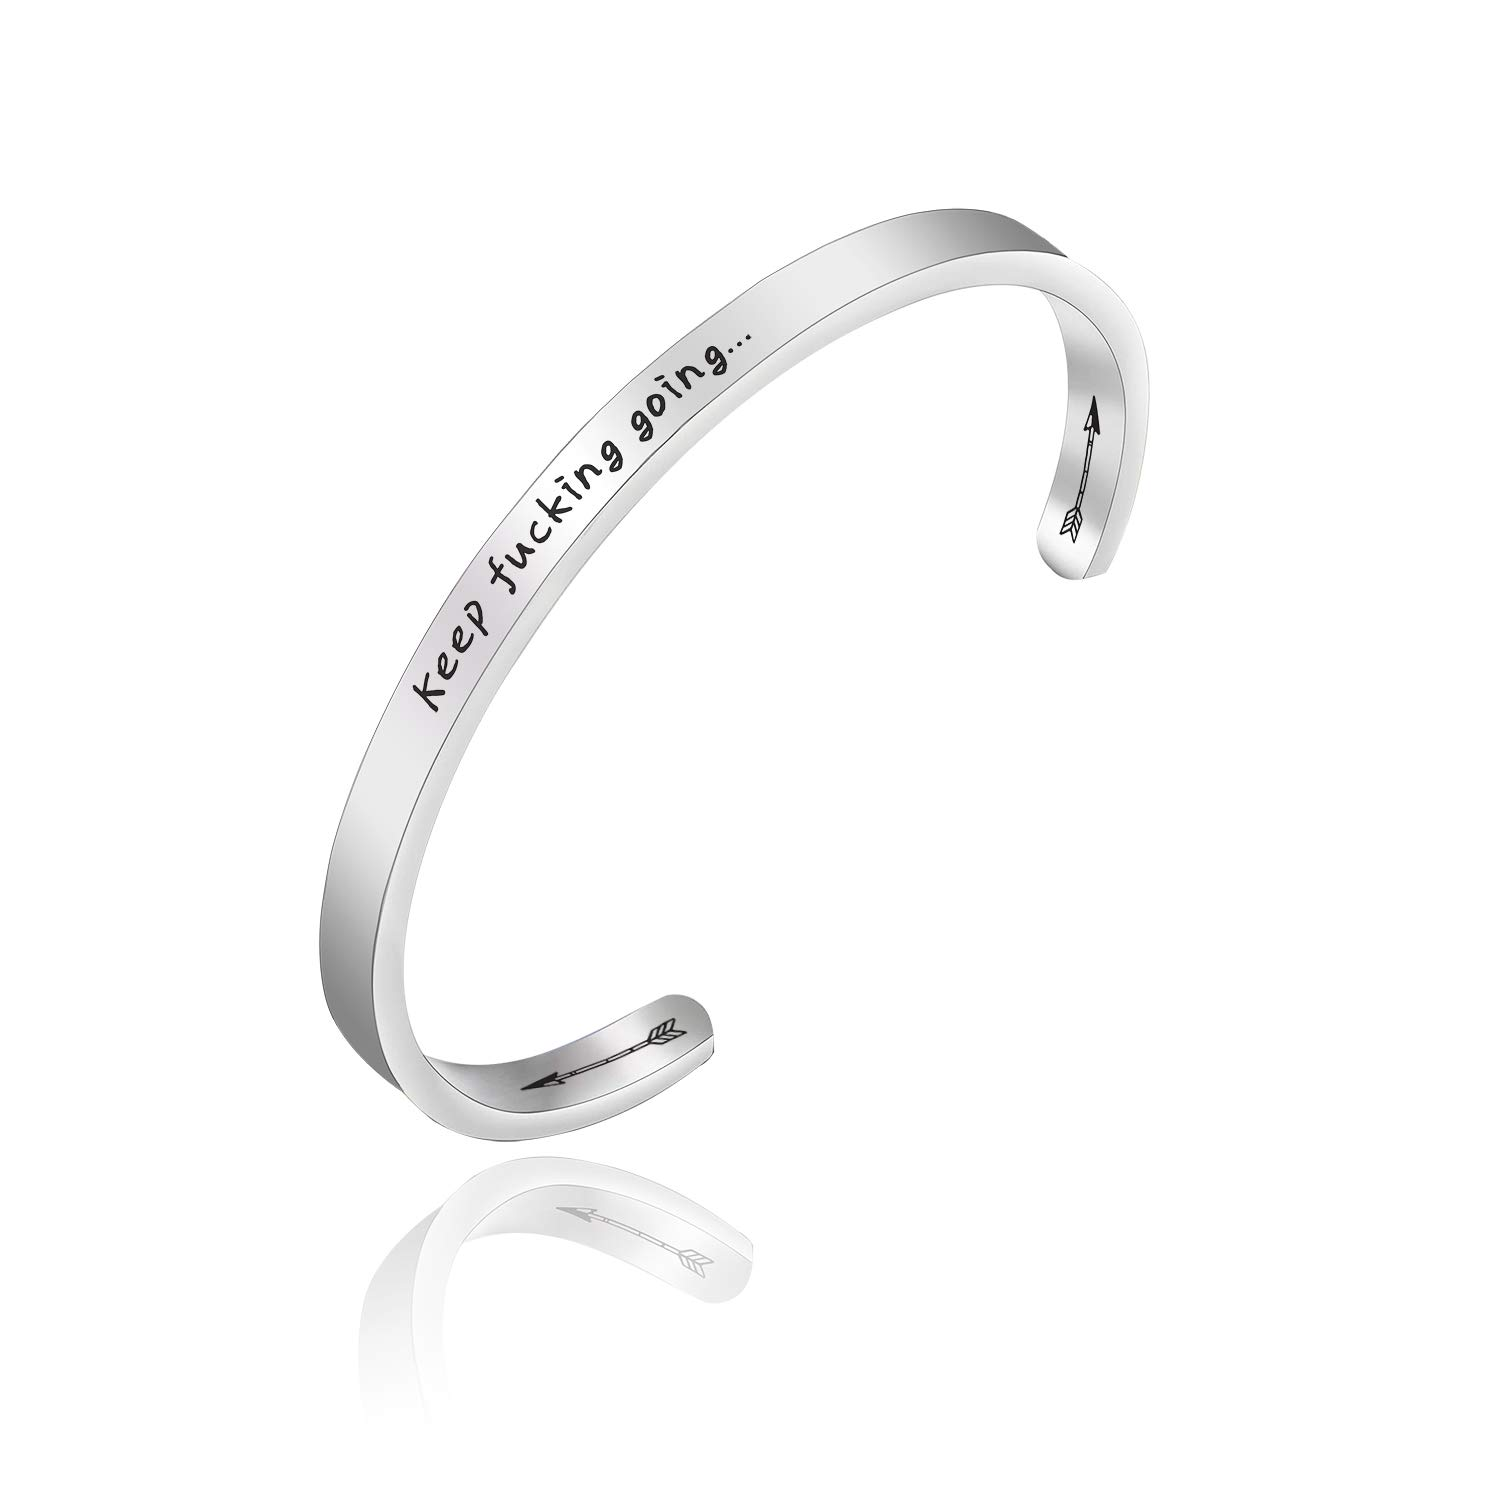 PLITI Stainless Steel Cuff Bangle I Am with You Till The End of The Line BFF Bracelet Geeky Friendship Gift